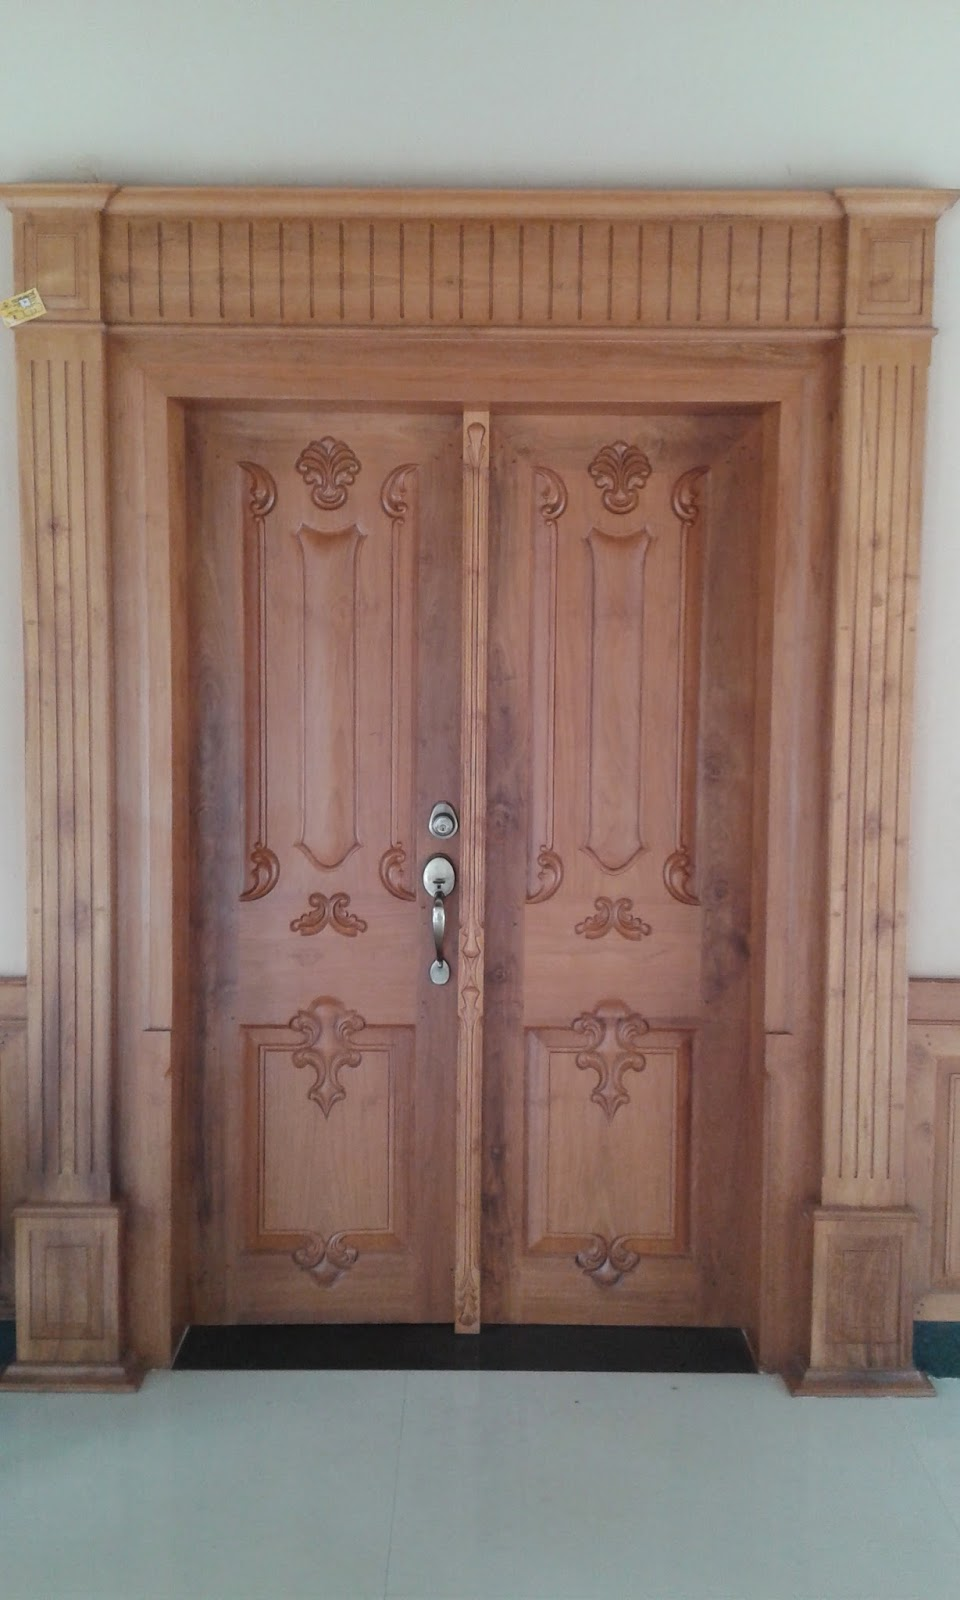 Kerala style carpenter works and designs for Door design catalogue in india